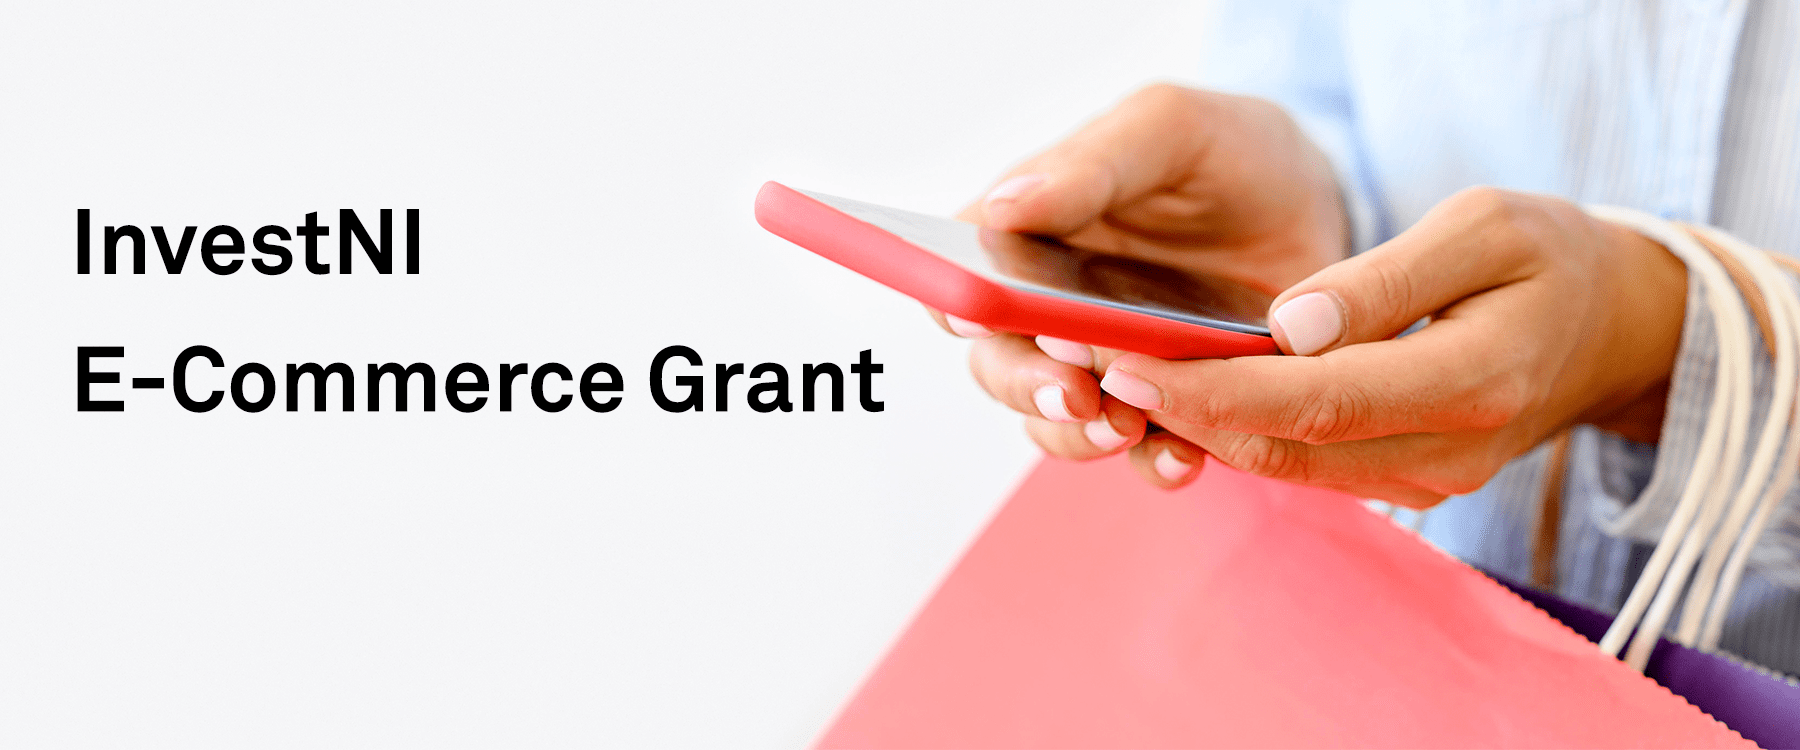 InvestNI Micro Business E-Commerce Grant – 80% funding available Image